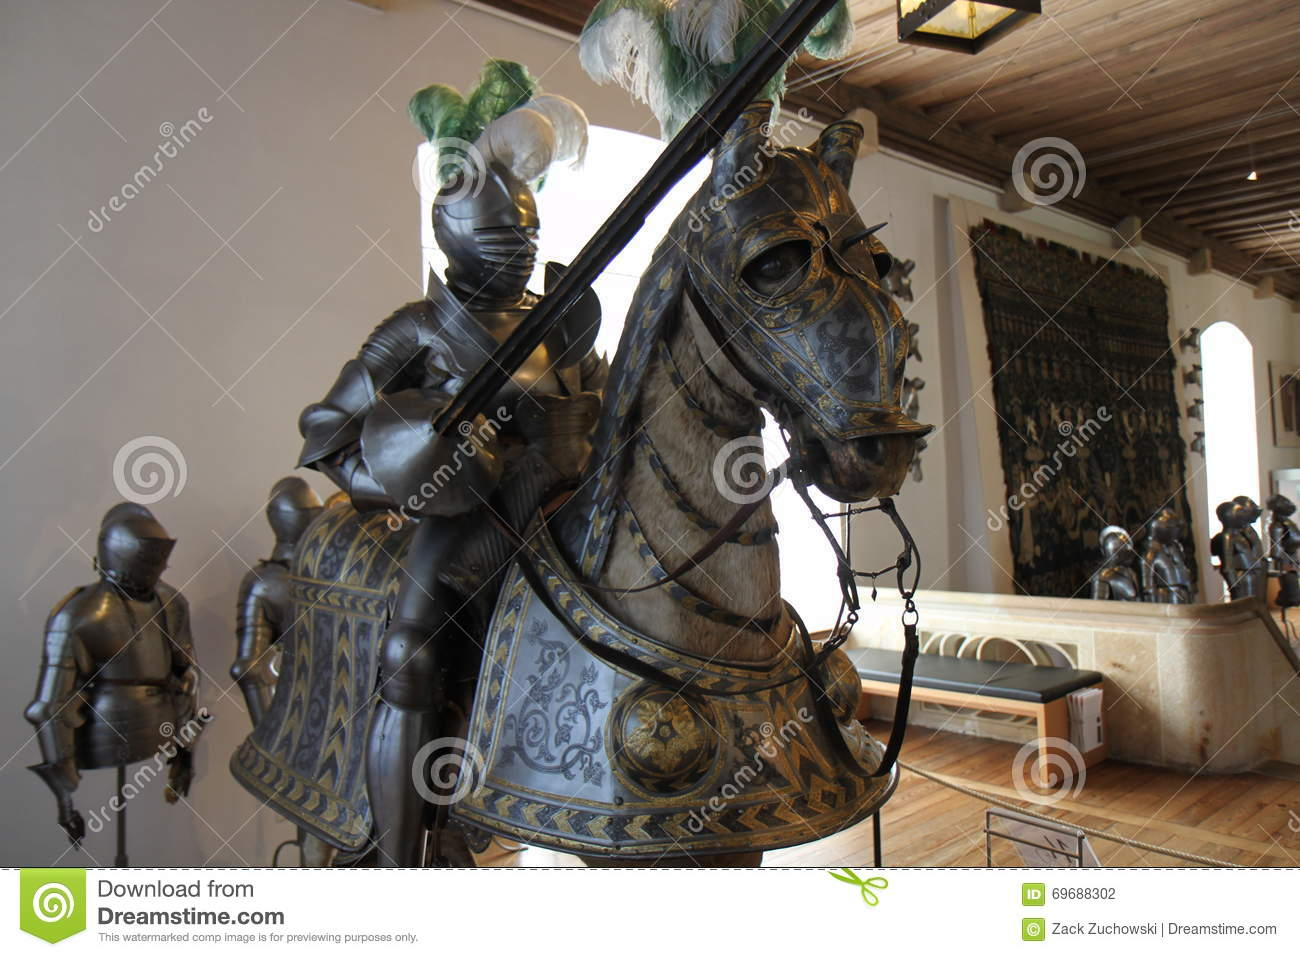 Knight armor a jousting lance and horse armor